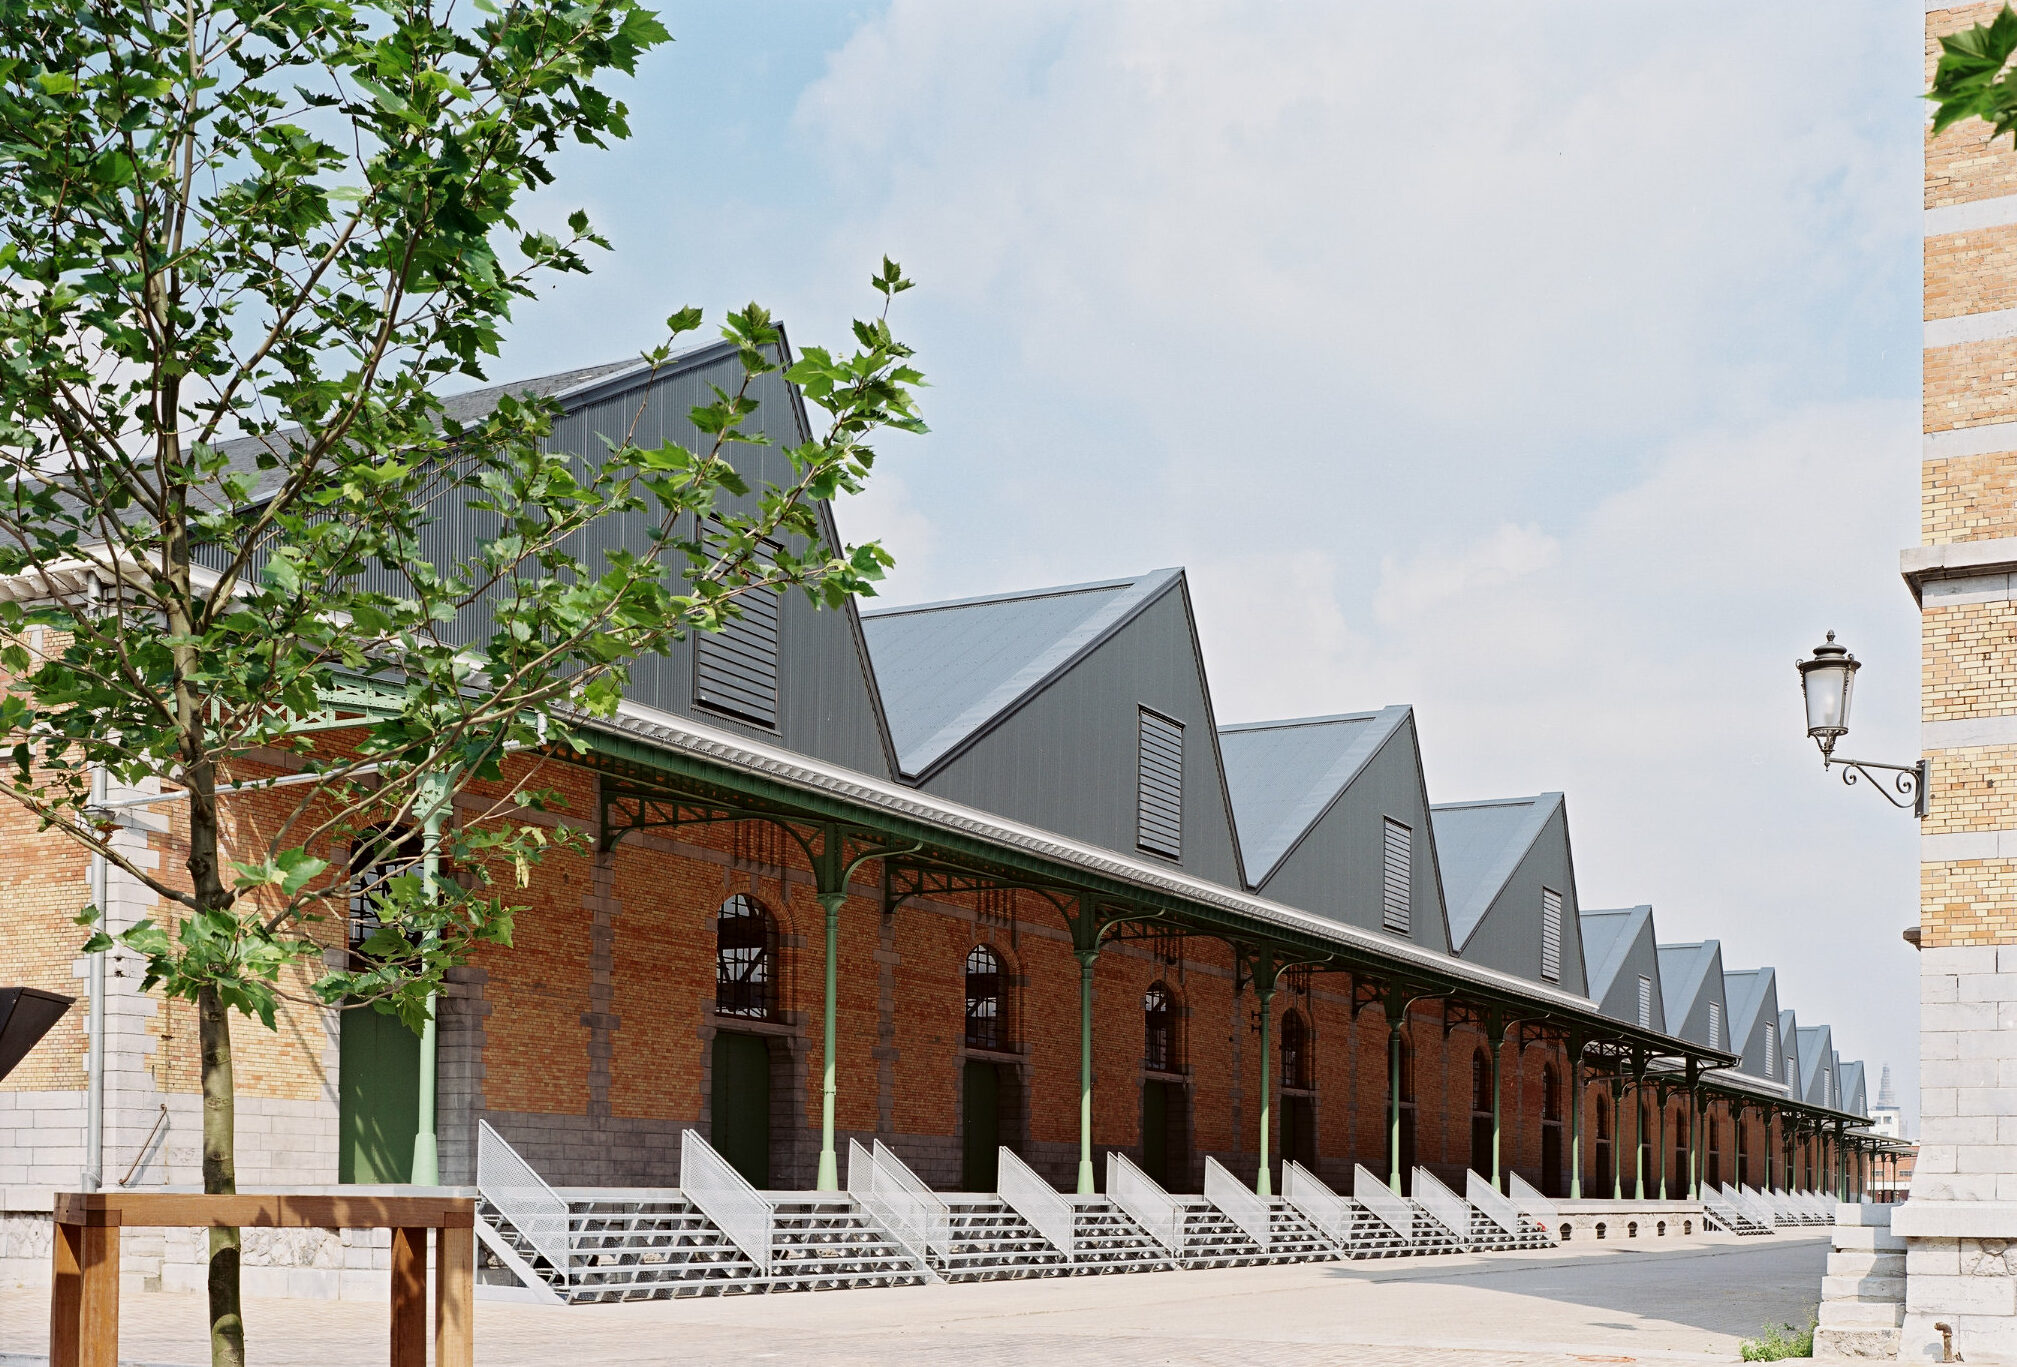 The sheds can welcome large gathering and big events